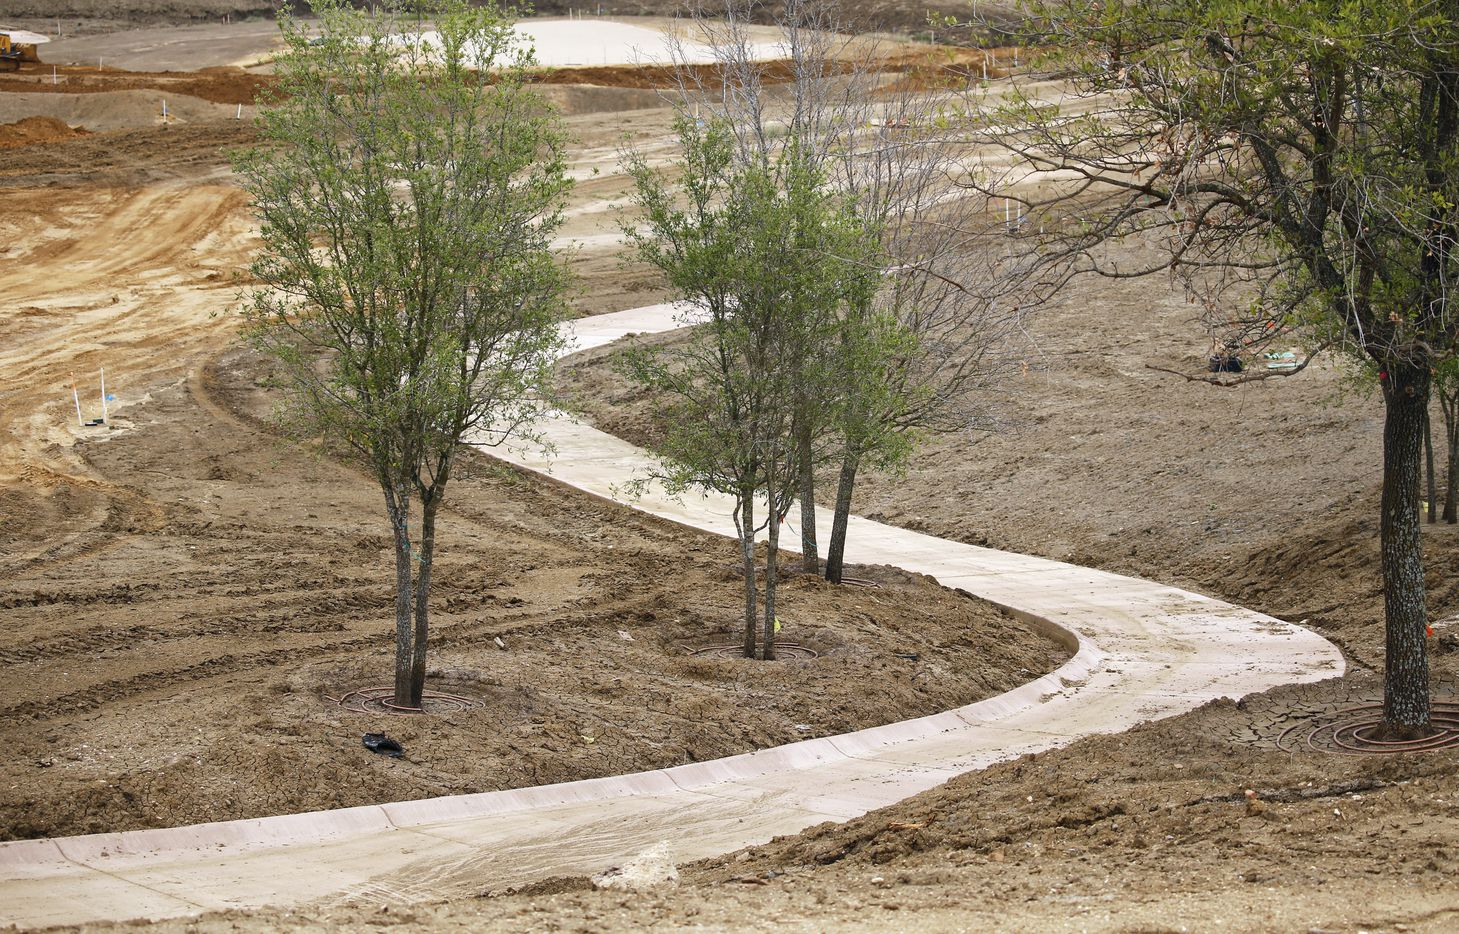 Concrete paths along the course on the West Course designed by Beau Welling at PGA Frisco in Frisco, Texas, on Wednesday, May 20, 2020. The $520 million project is a mixed-use development that will be home to the PGA of America headquarters and two championship golf courses.